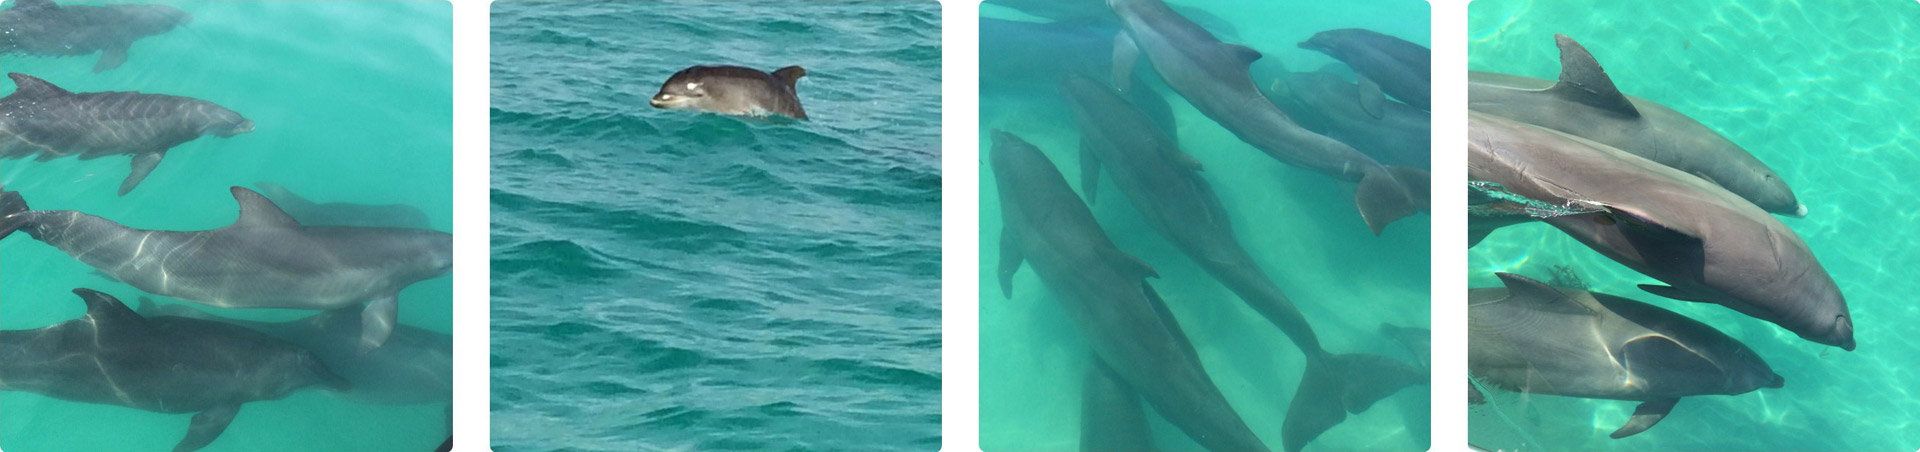 Pods of dolphins swimming in the Gulf of Mexico